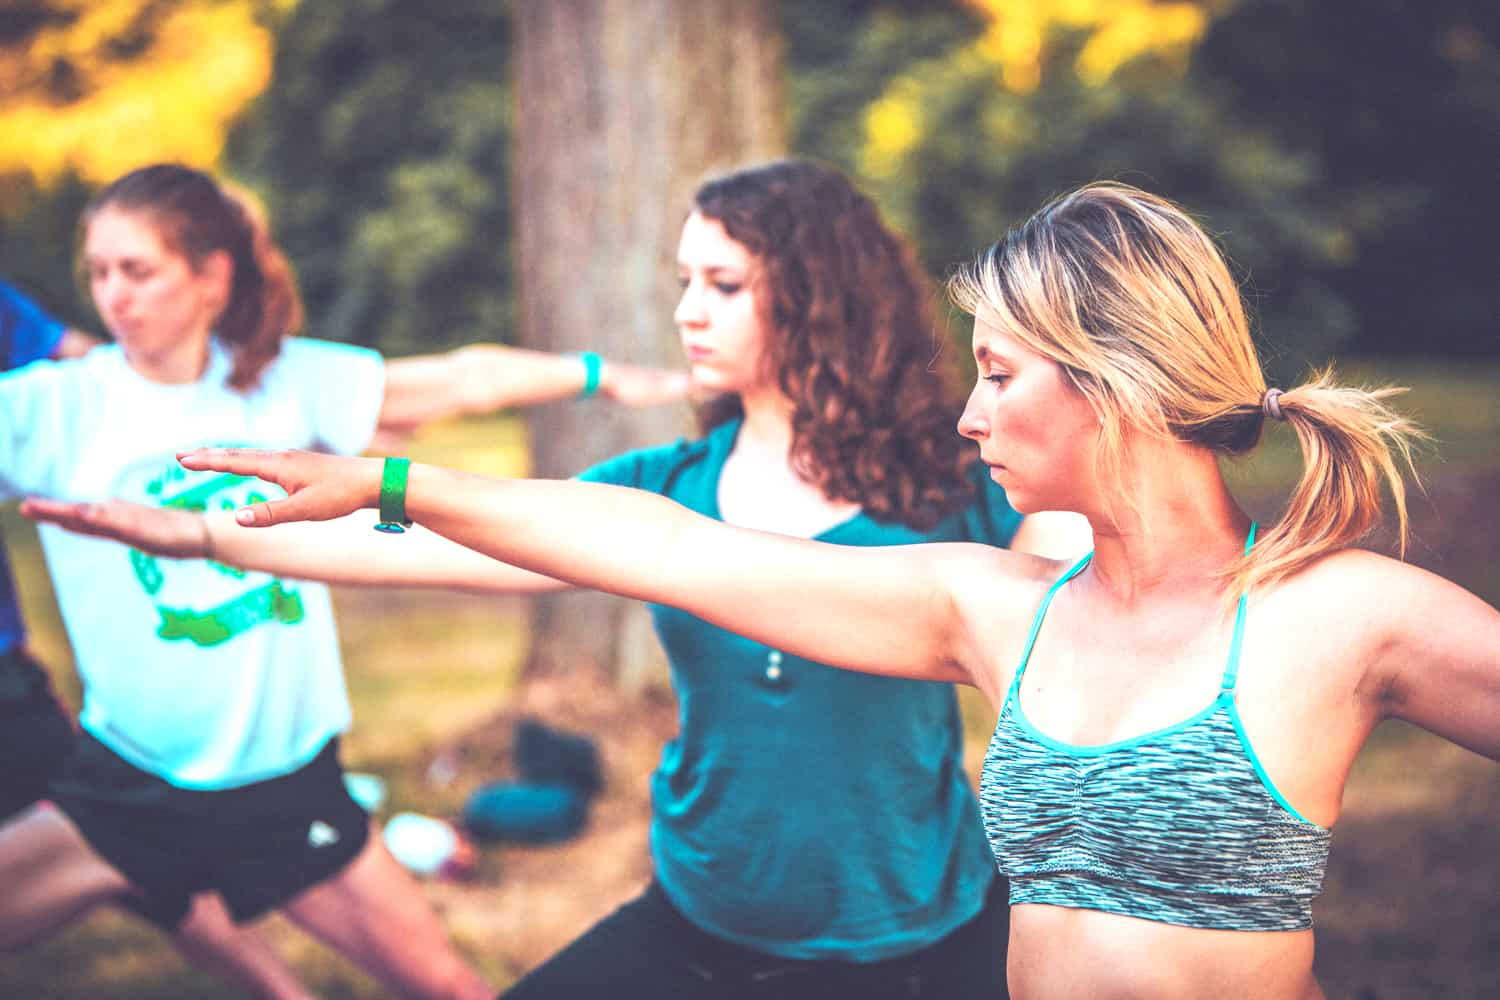 People practising yoga at Camp Wildfire. A summer weekend break in a forest near London and Kent. An outdoor woodland retreat featuring adventure activities, live music, DJs, parties and camping. Half summer adventure activity camp, half music festival, for adults only.